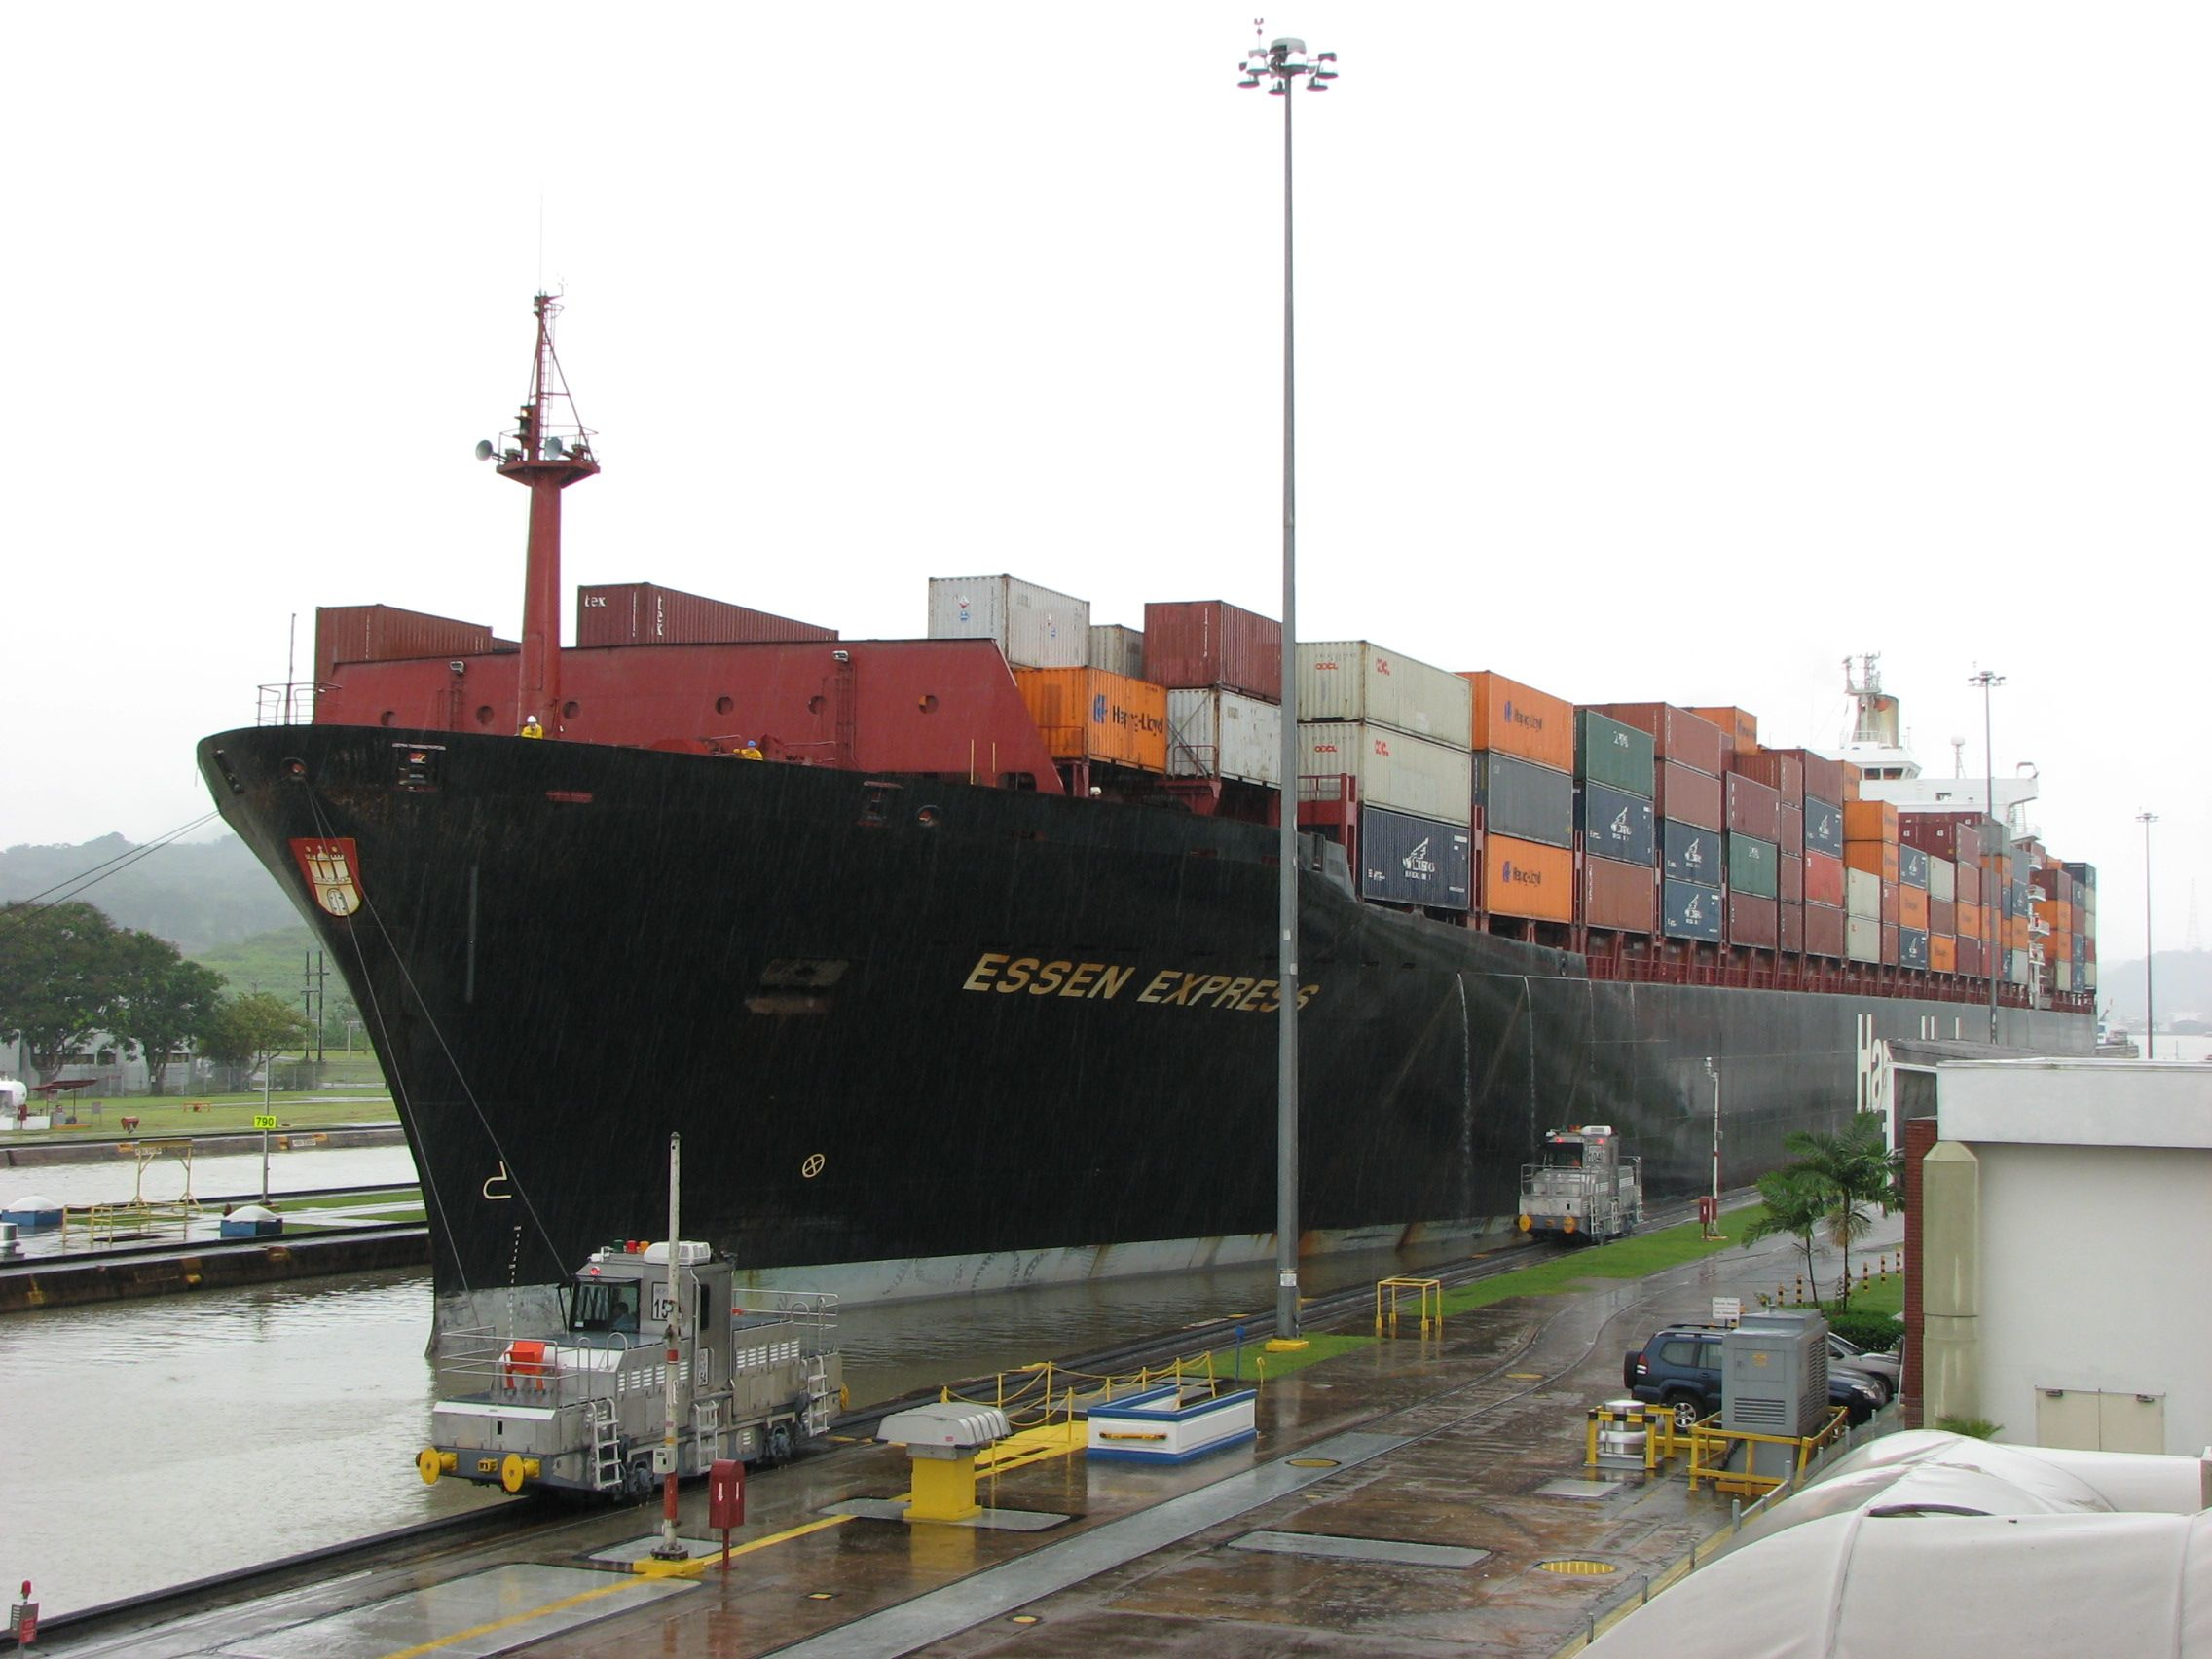 Panama Roadrunner can take you to Miraflores Locks to see the container ships go through the canal. Plan your daytrip in the city today! www.panamroadrunner.com